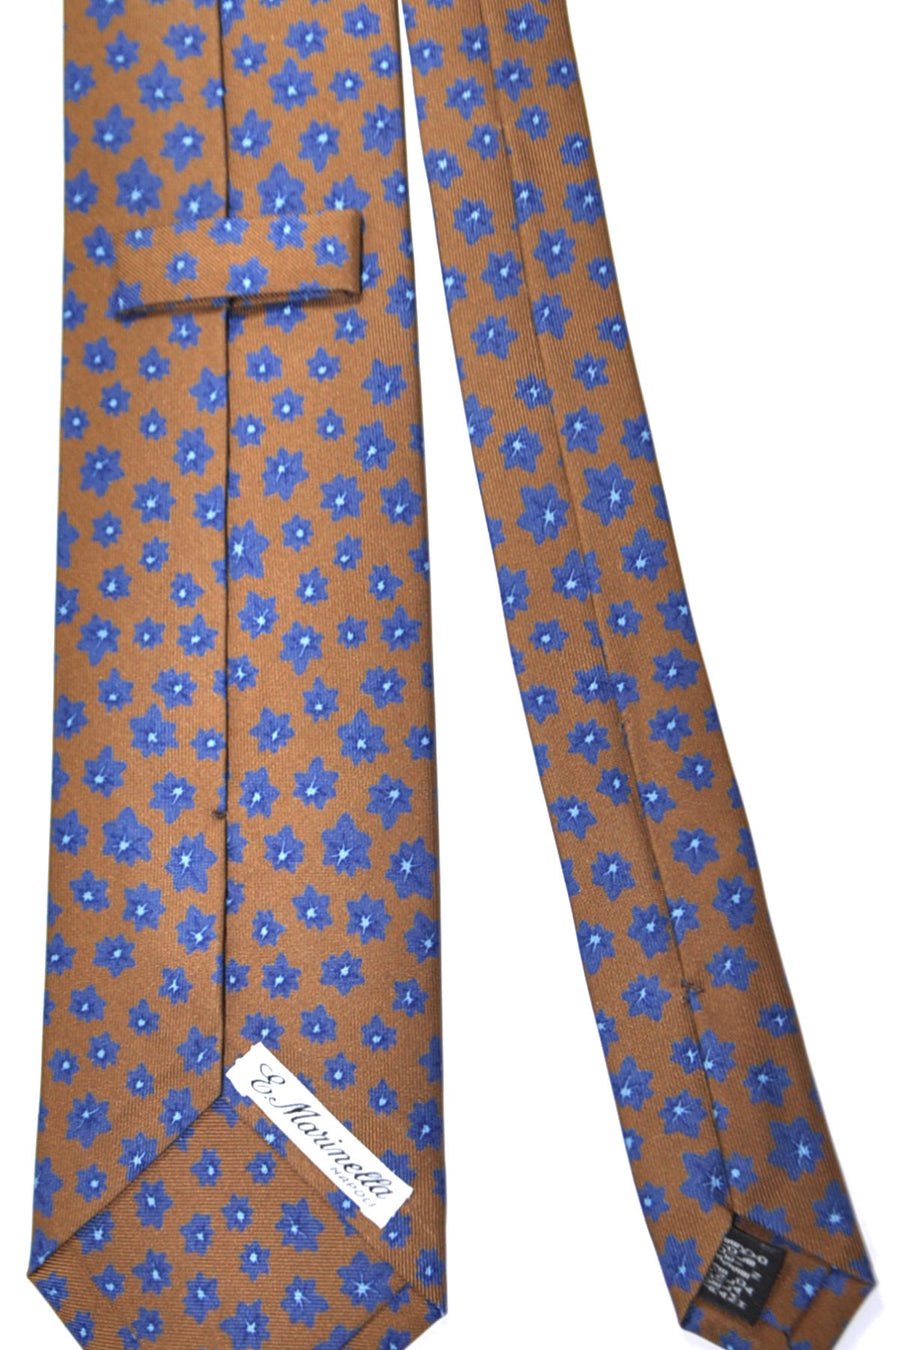 E. Marinella Tie Brown Navy Floral Design - Wide Necktie